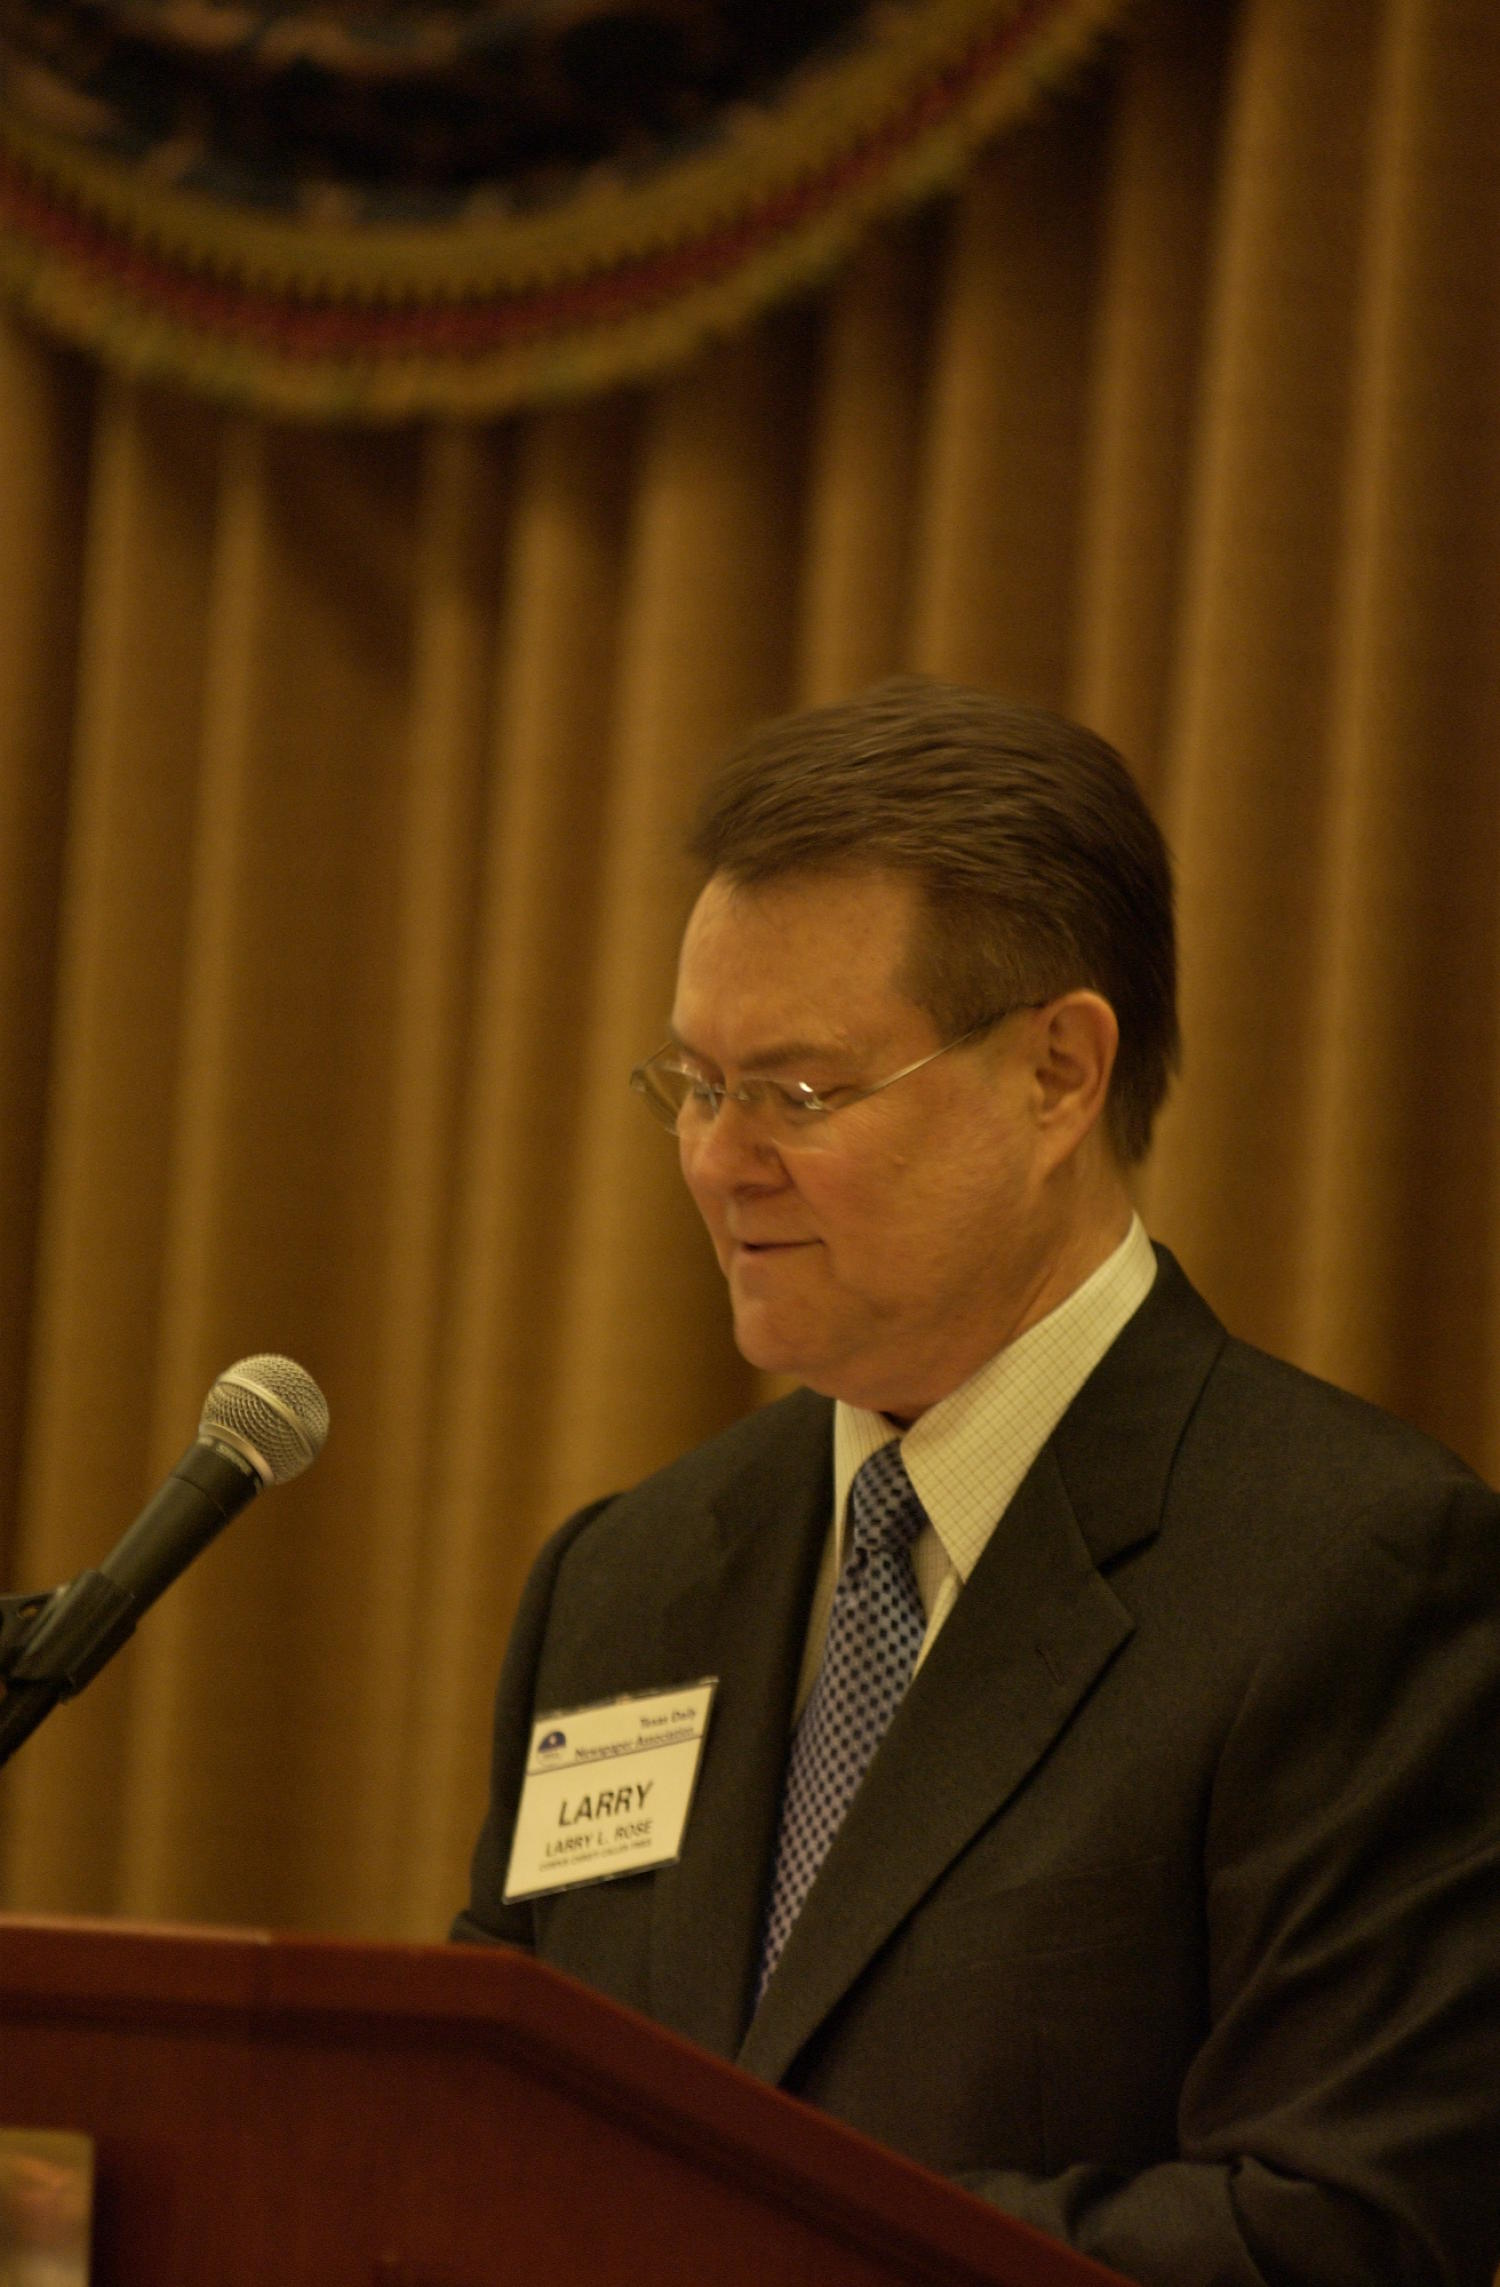 [Larry L. Rose guest speaking at TDNA conference], Photograph of Larry L. Rose, guest speaking at the 2004 Texas Daily News Association (TDNA) annual conference held in Corpus Christi. Rose is seen standing at the podium and looking down at his notes, the microphone a foot away from him.,